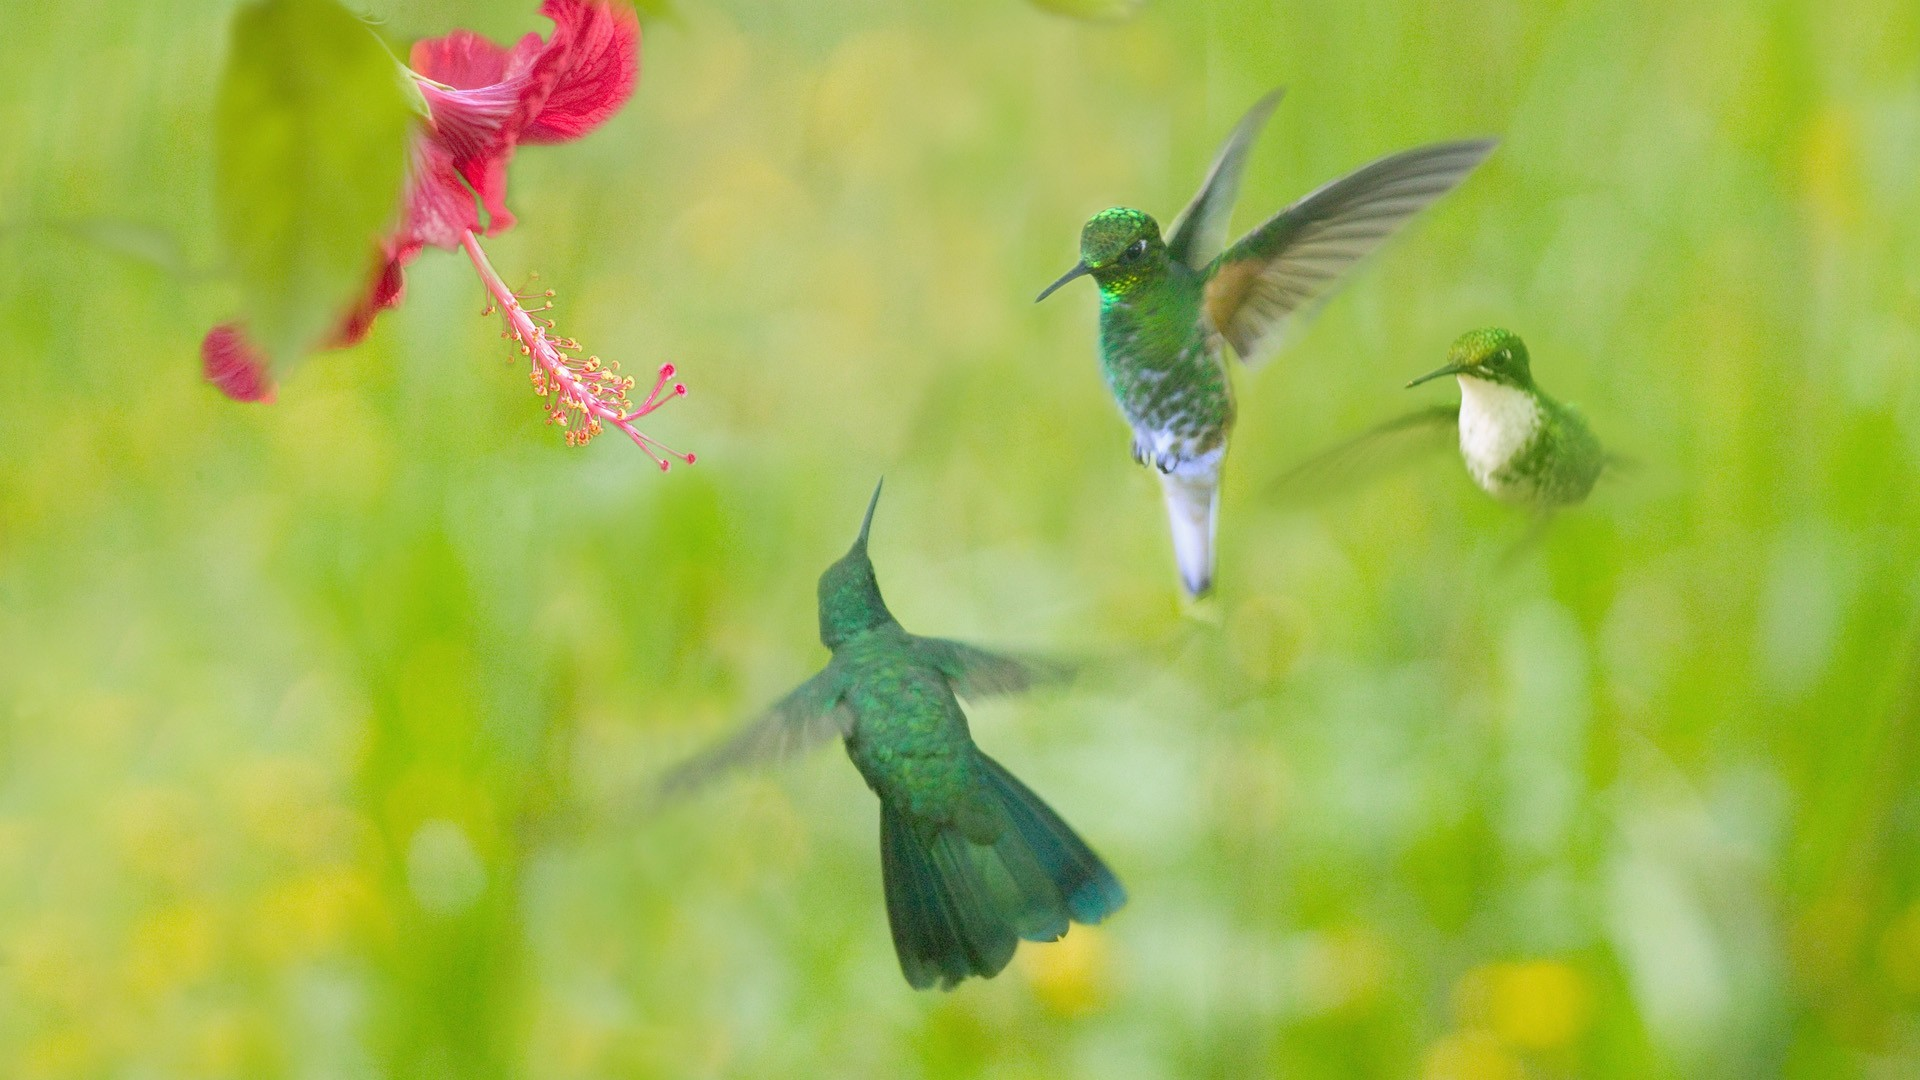 Birds hummingbirds HD Wallpaper